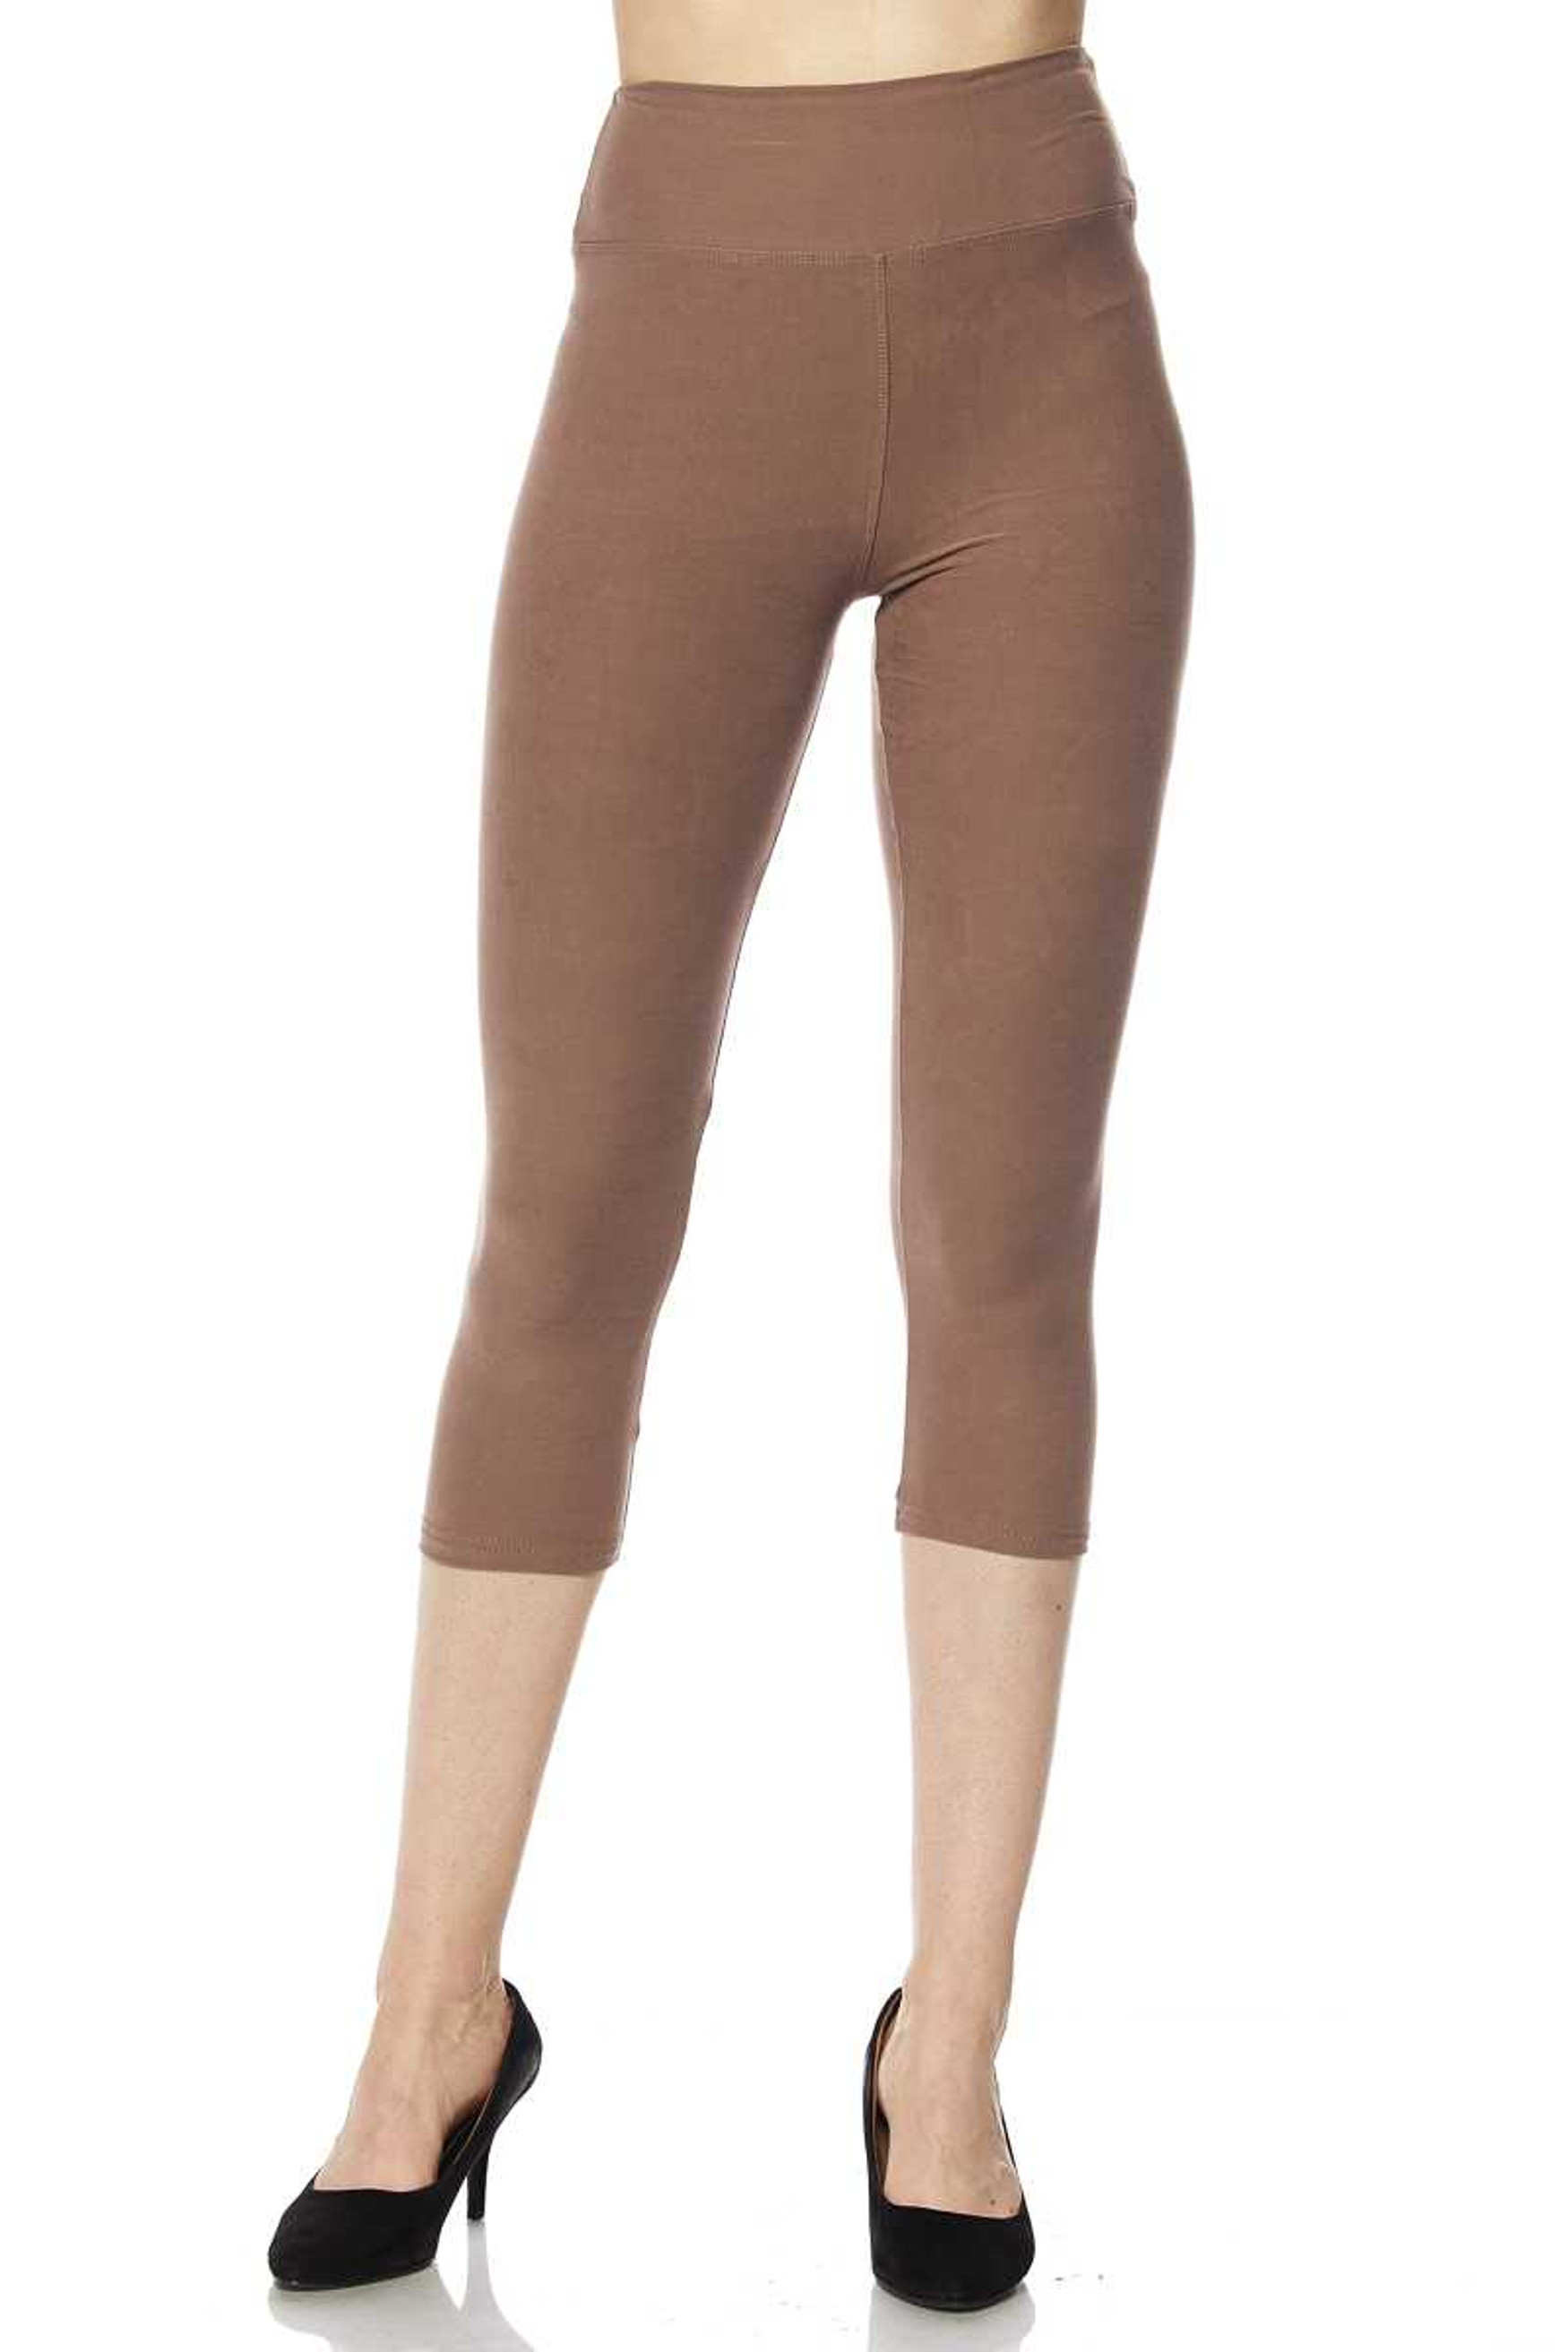 Brushed  Basic Solid High Waisted Plus Size Capris - 3 Inch - New Mix